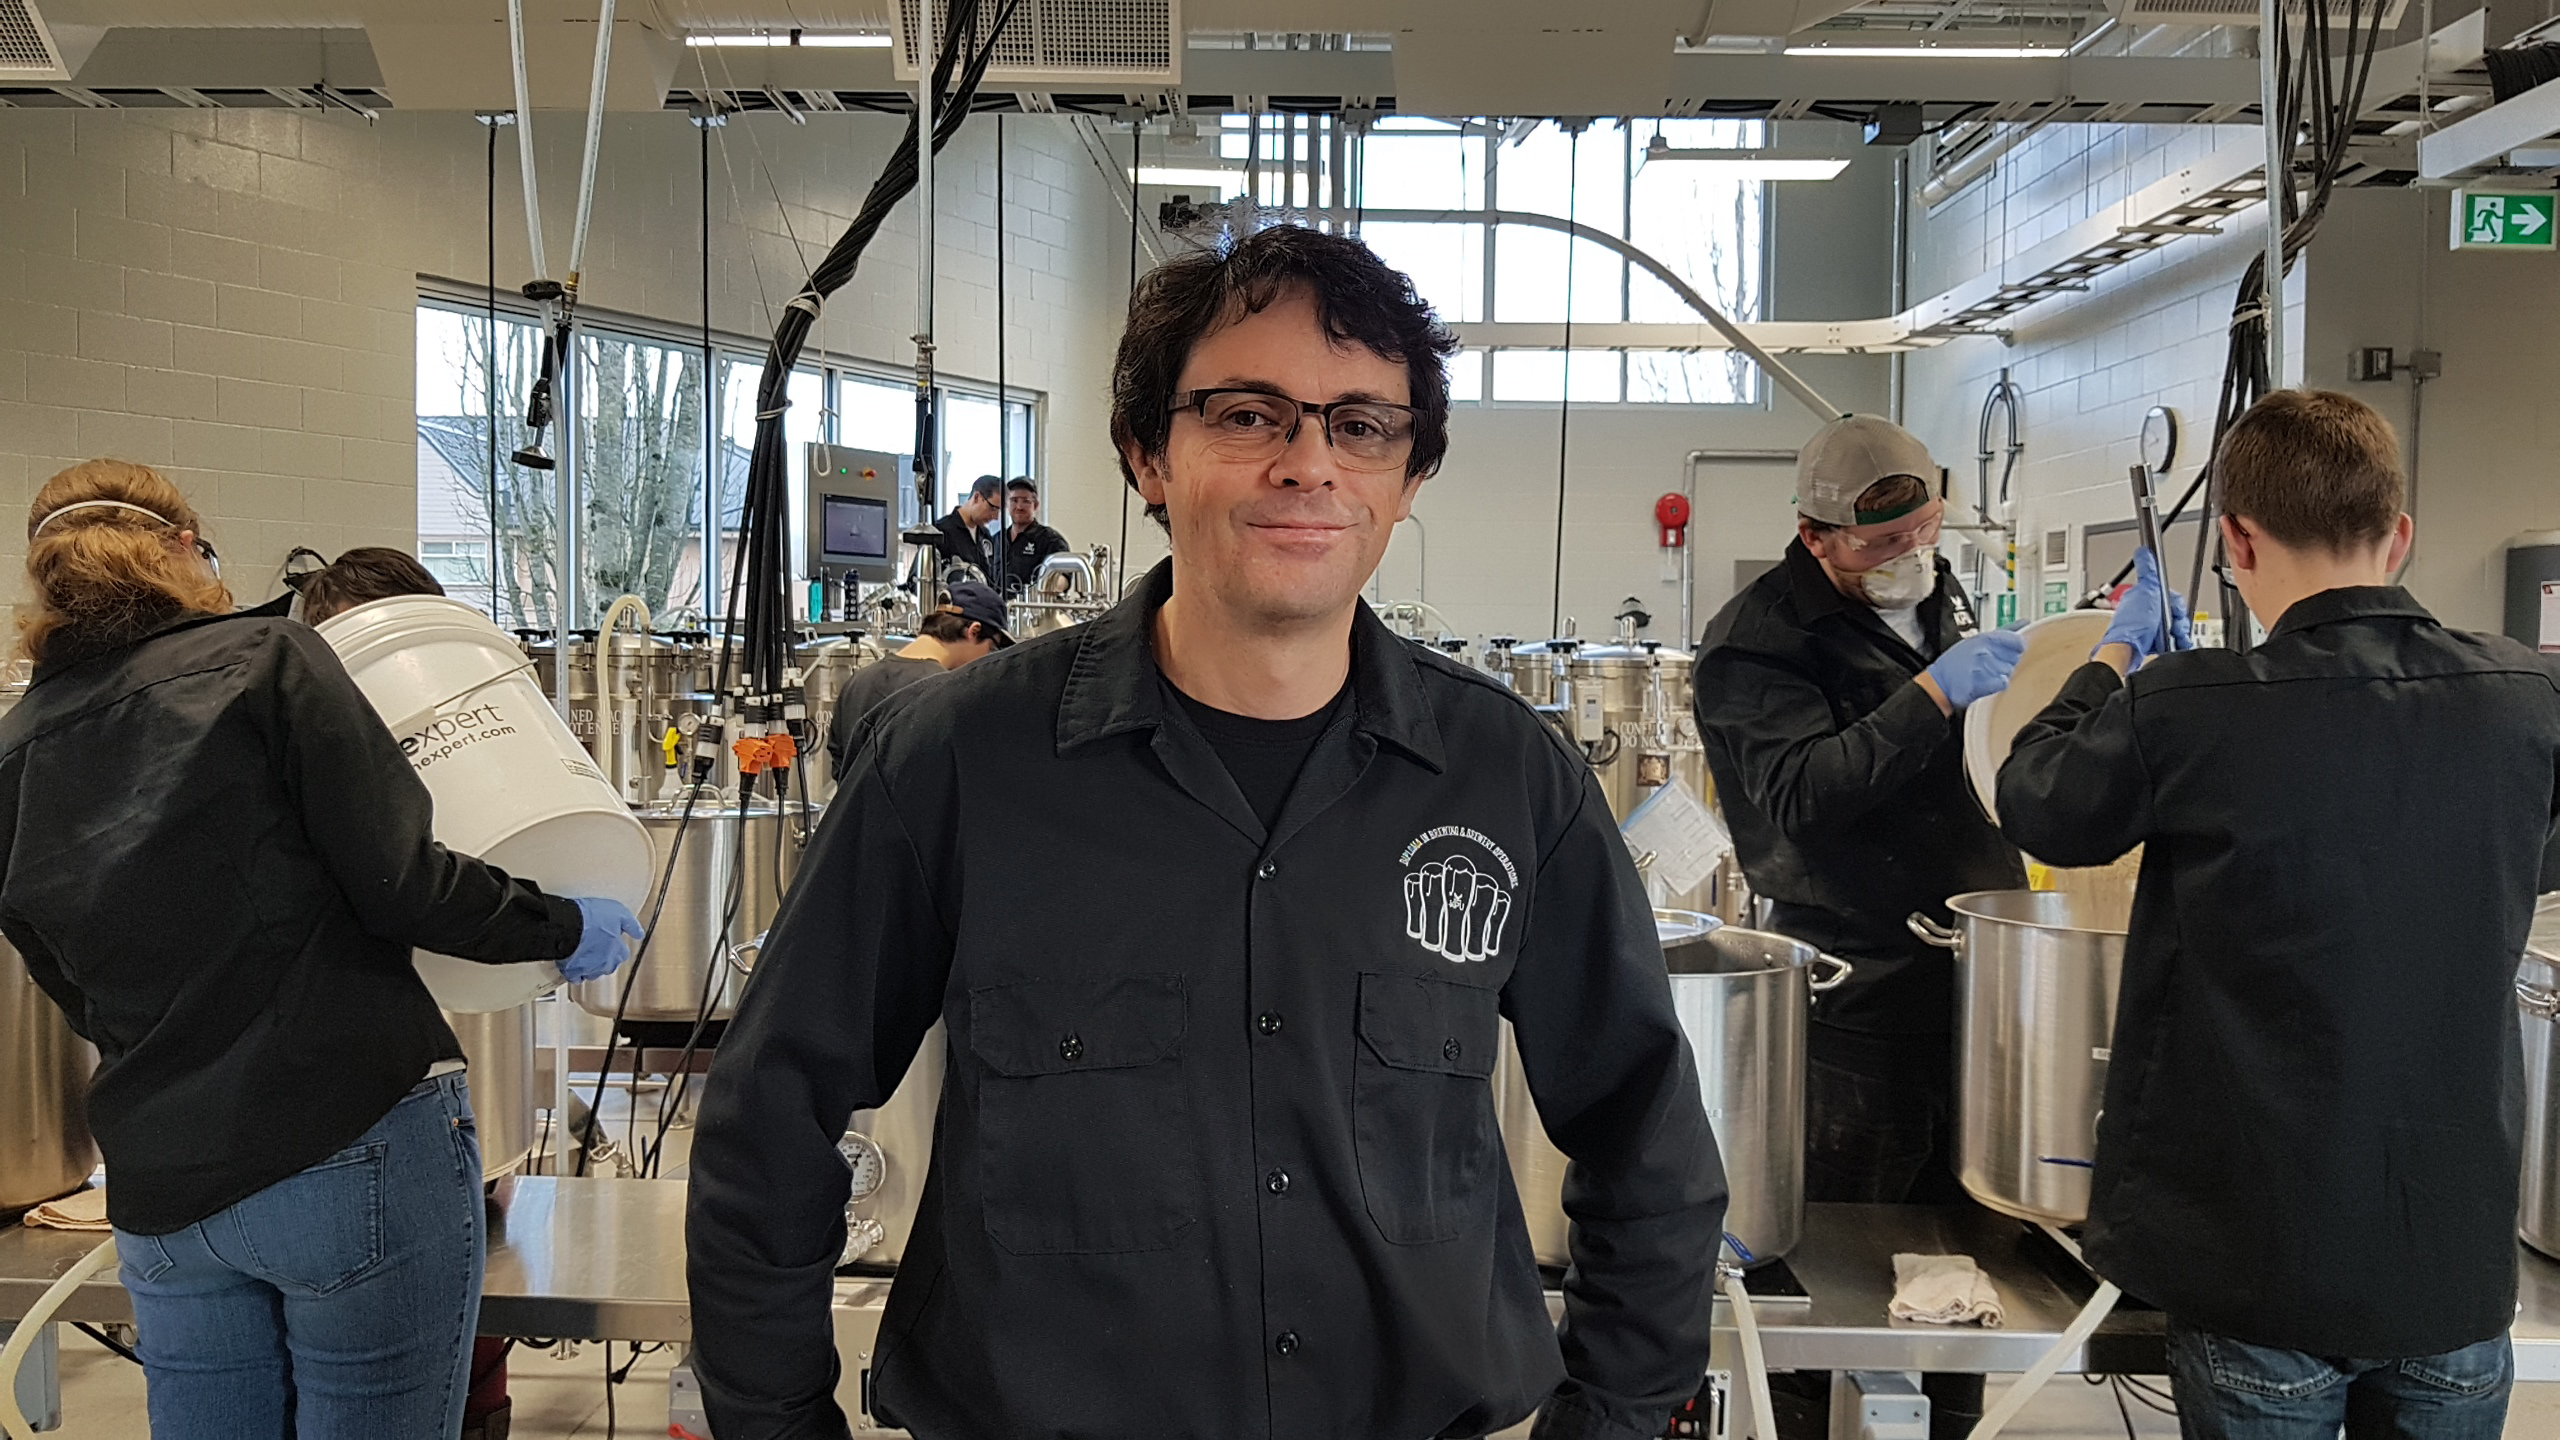 Kwantlen Polytechnic University (KPU) has been awarded the title of Grand National Championship as the school that brews the best beers in North America.   KPU brewing recently competed in the U.S. Open College Beer Championship winning two gold and one s